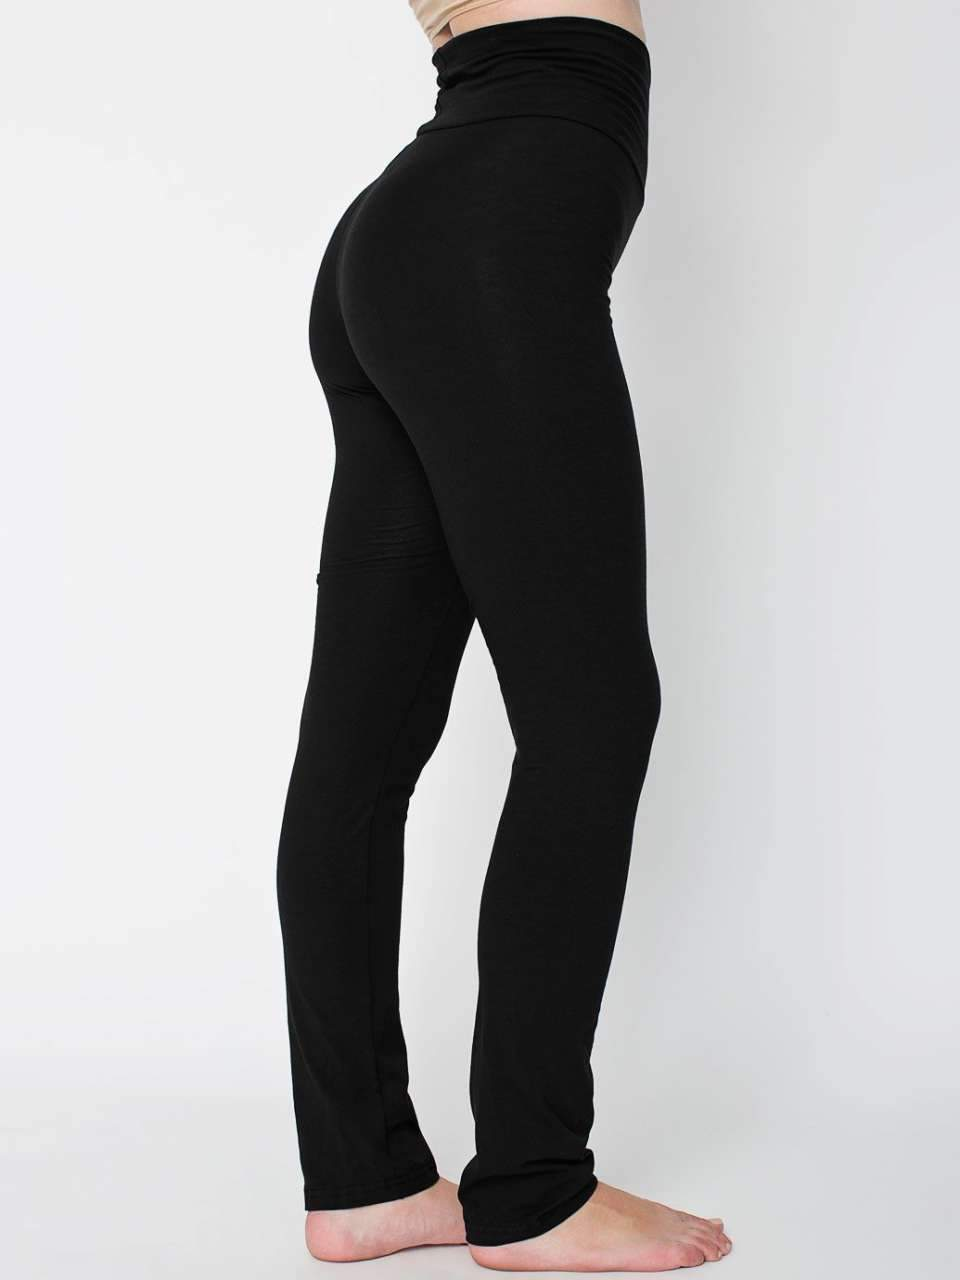 WOMEN'S COTTON SPANDEX JERSEY STRAIGHT LEG YOGA PANT